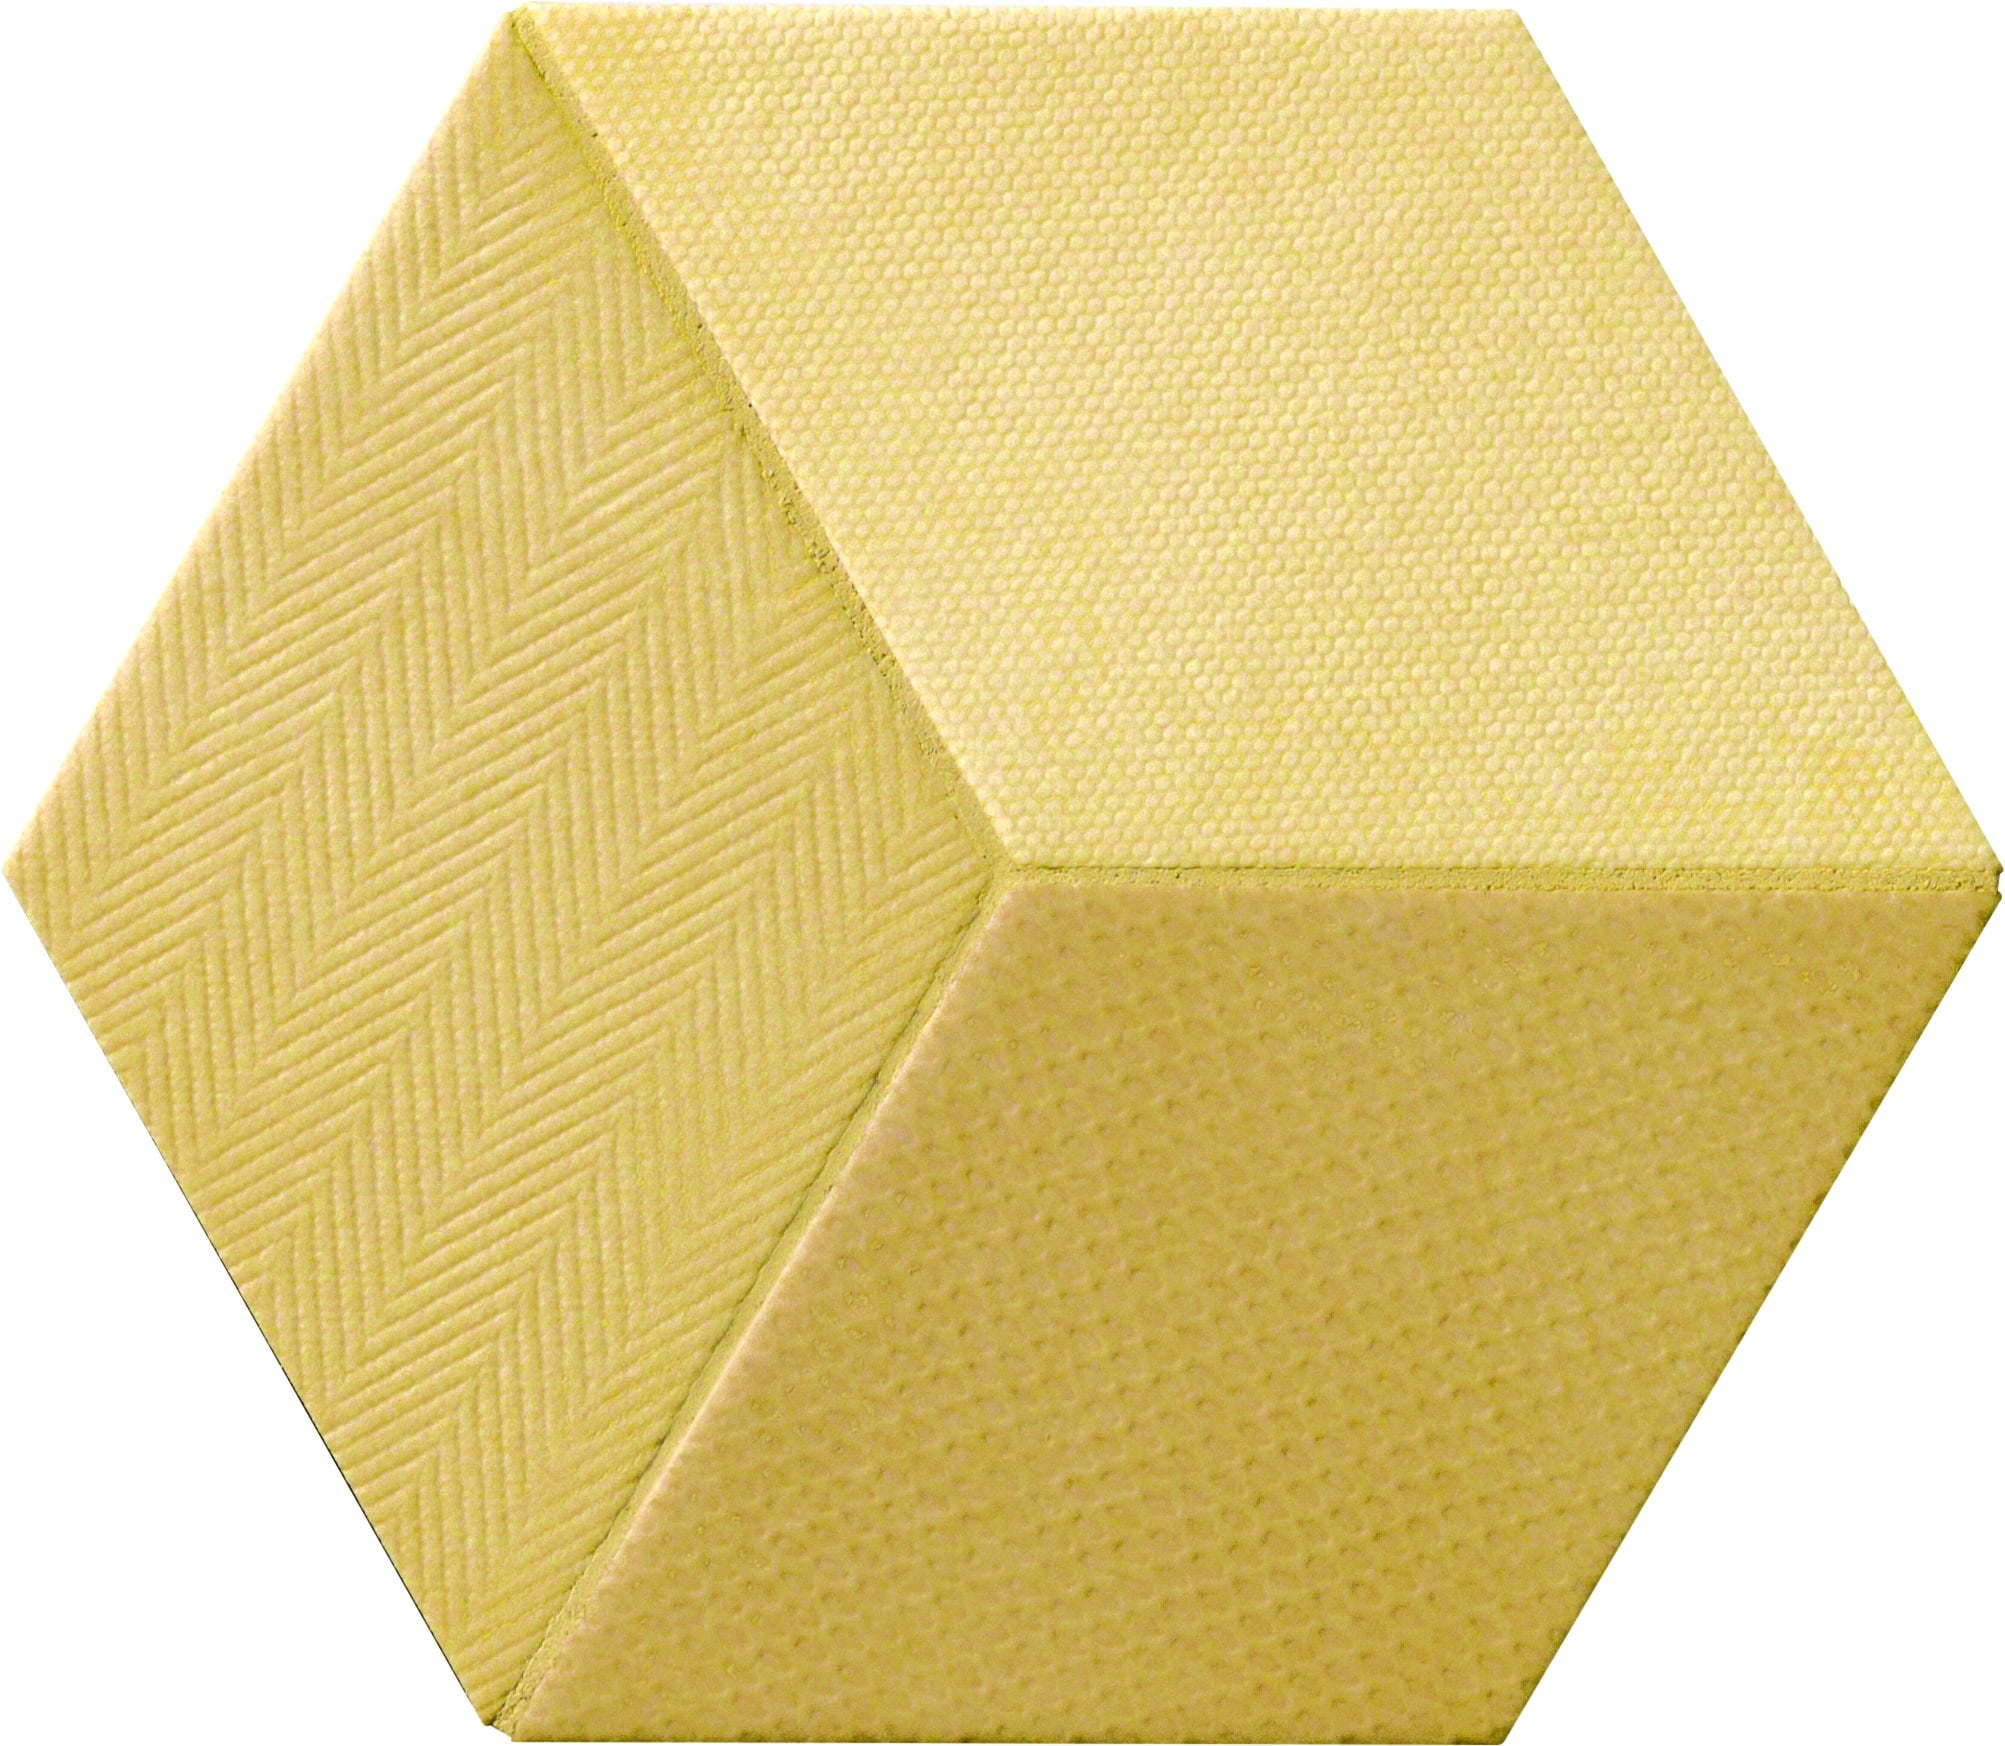 Lovely 12X24 Ceramic Floor Tile Tall 16X16 Ceiling Tiles Rectangular 2X2 Ceiling Tile 2X2 Ceiling Tiles Young 3 By 6 Subway Tile Yellow3 X 6 Glass Subway Tile Rumble In The Rhombus: TEX Tile Weave Inspired Ceramic Tiles   COVER ..